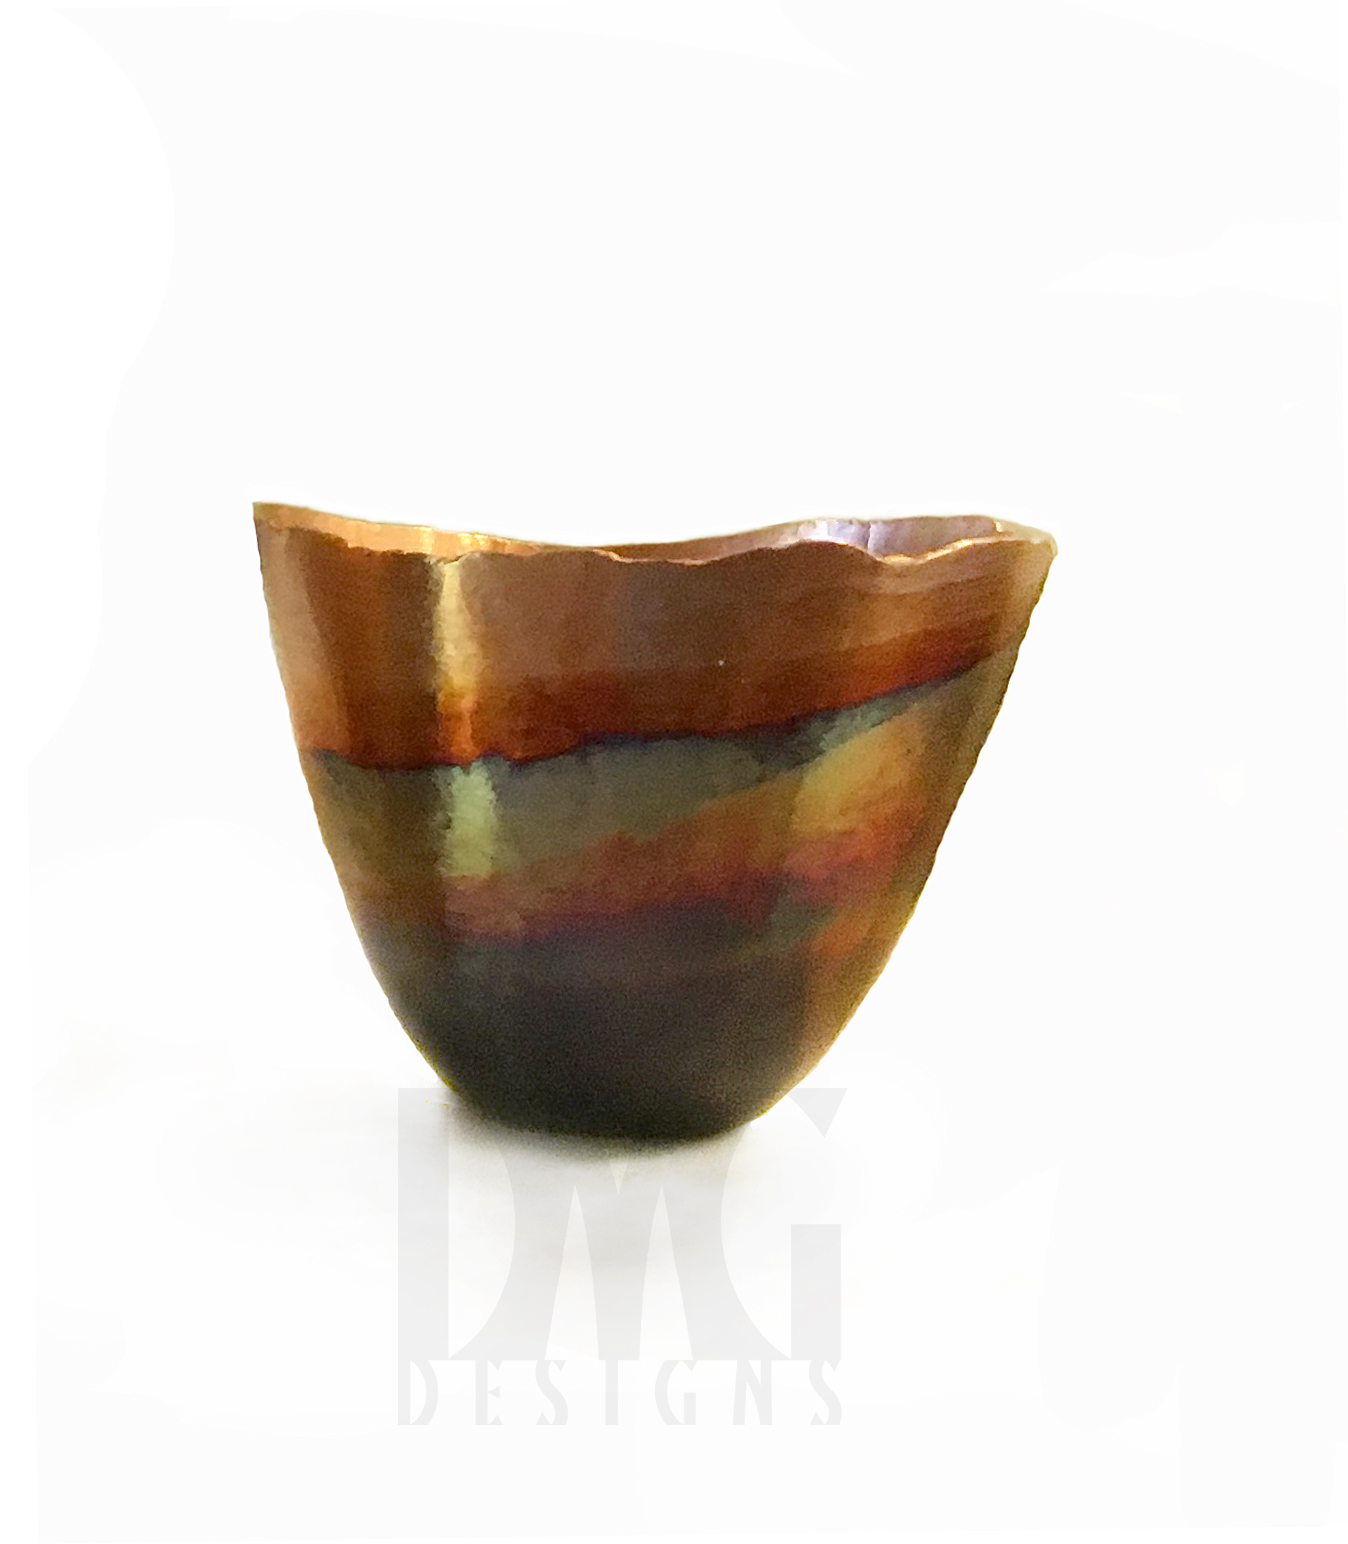 Small Vessel 2 Layered Patina